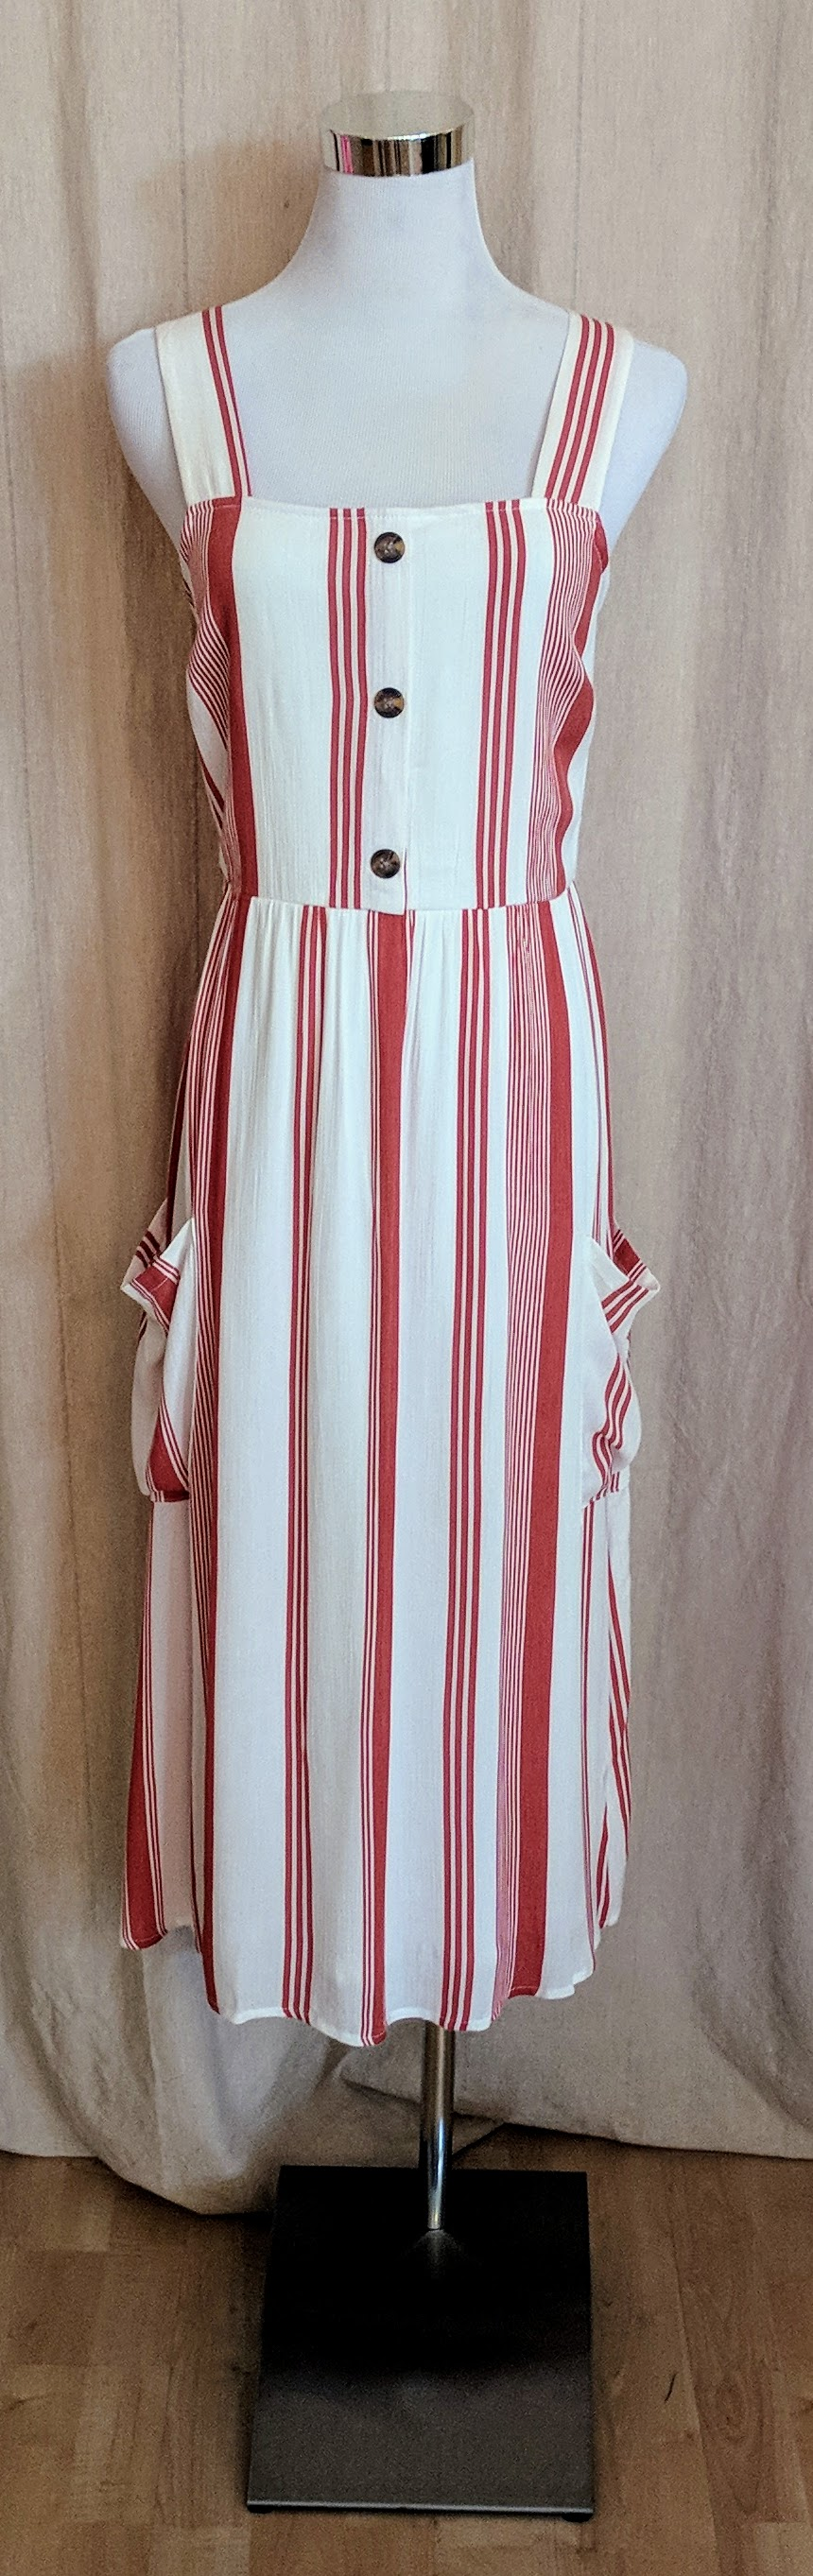 White and orange striped midi dress with buttons.